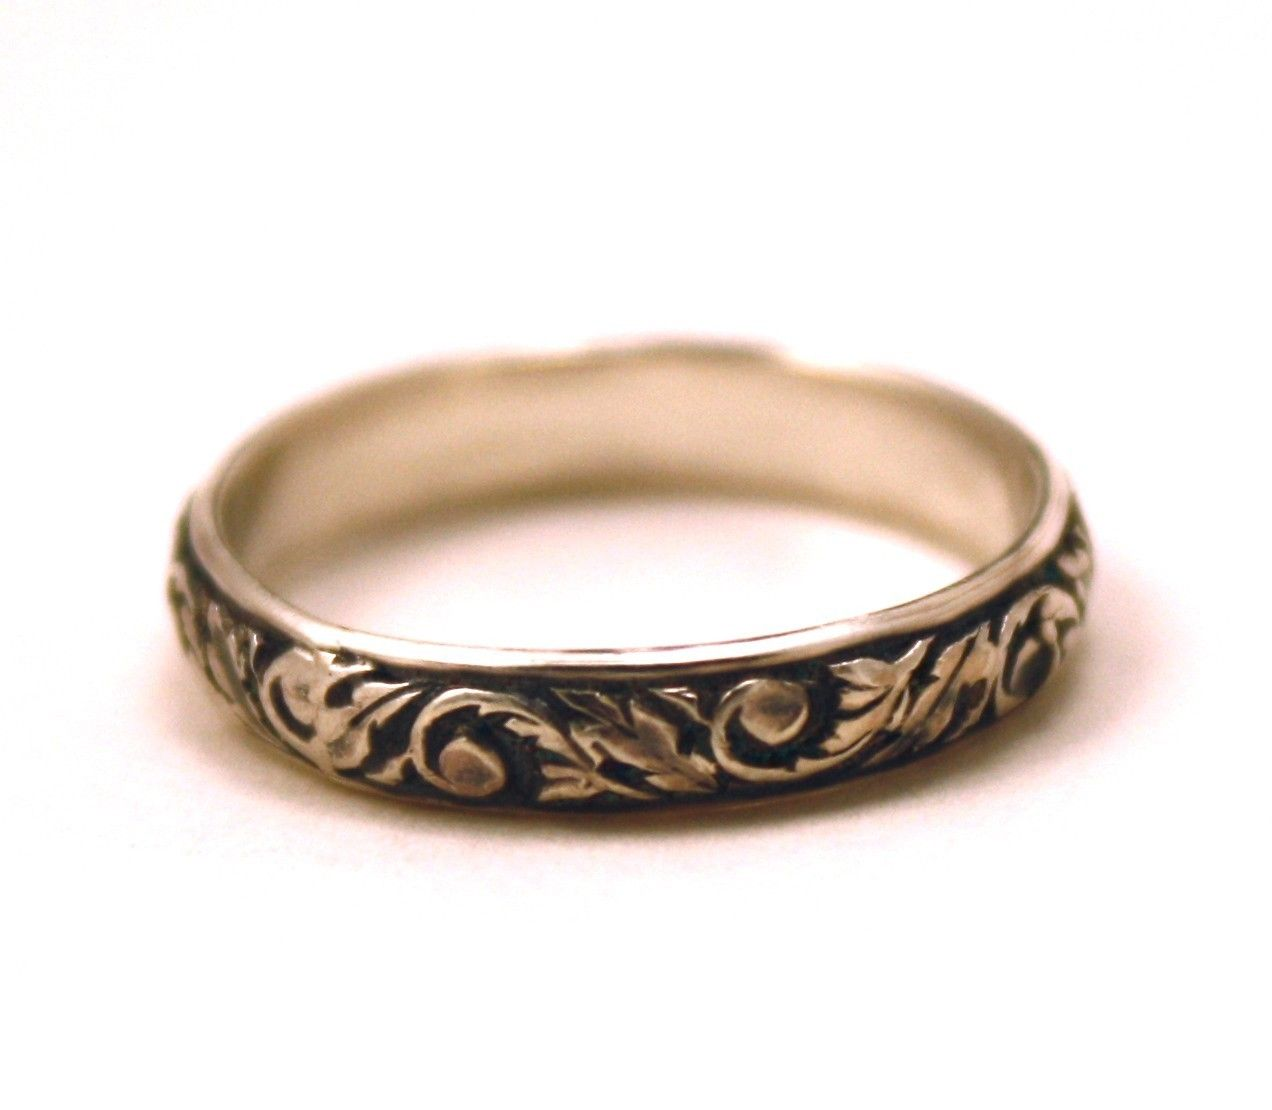 engraved wedding bands Victorian Wedding Band Oxidized Scroll Sterling Silver FREE ENGRAVING womens single band